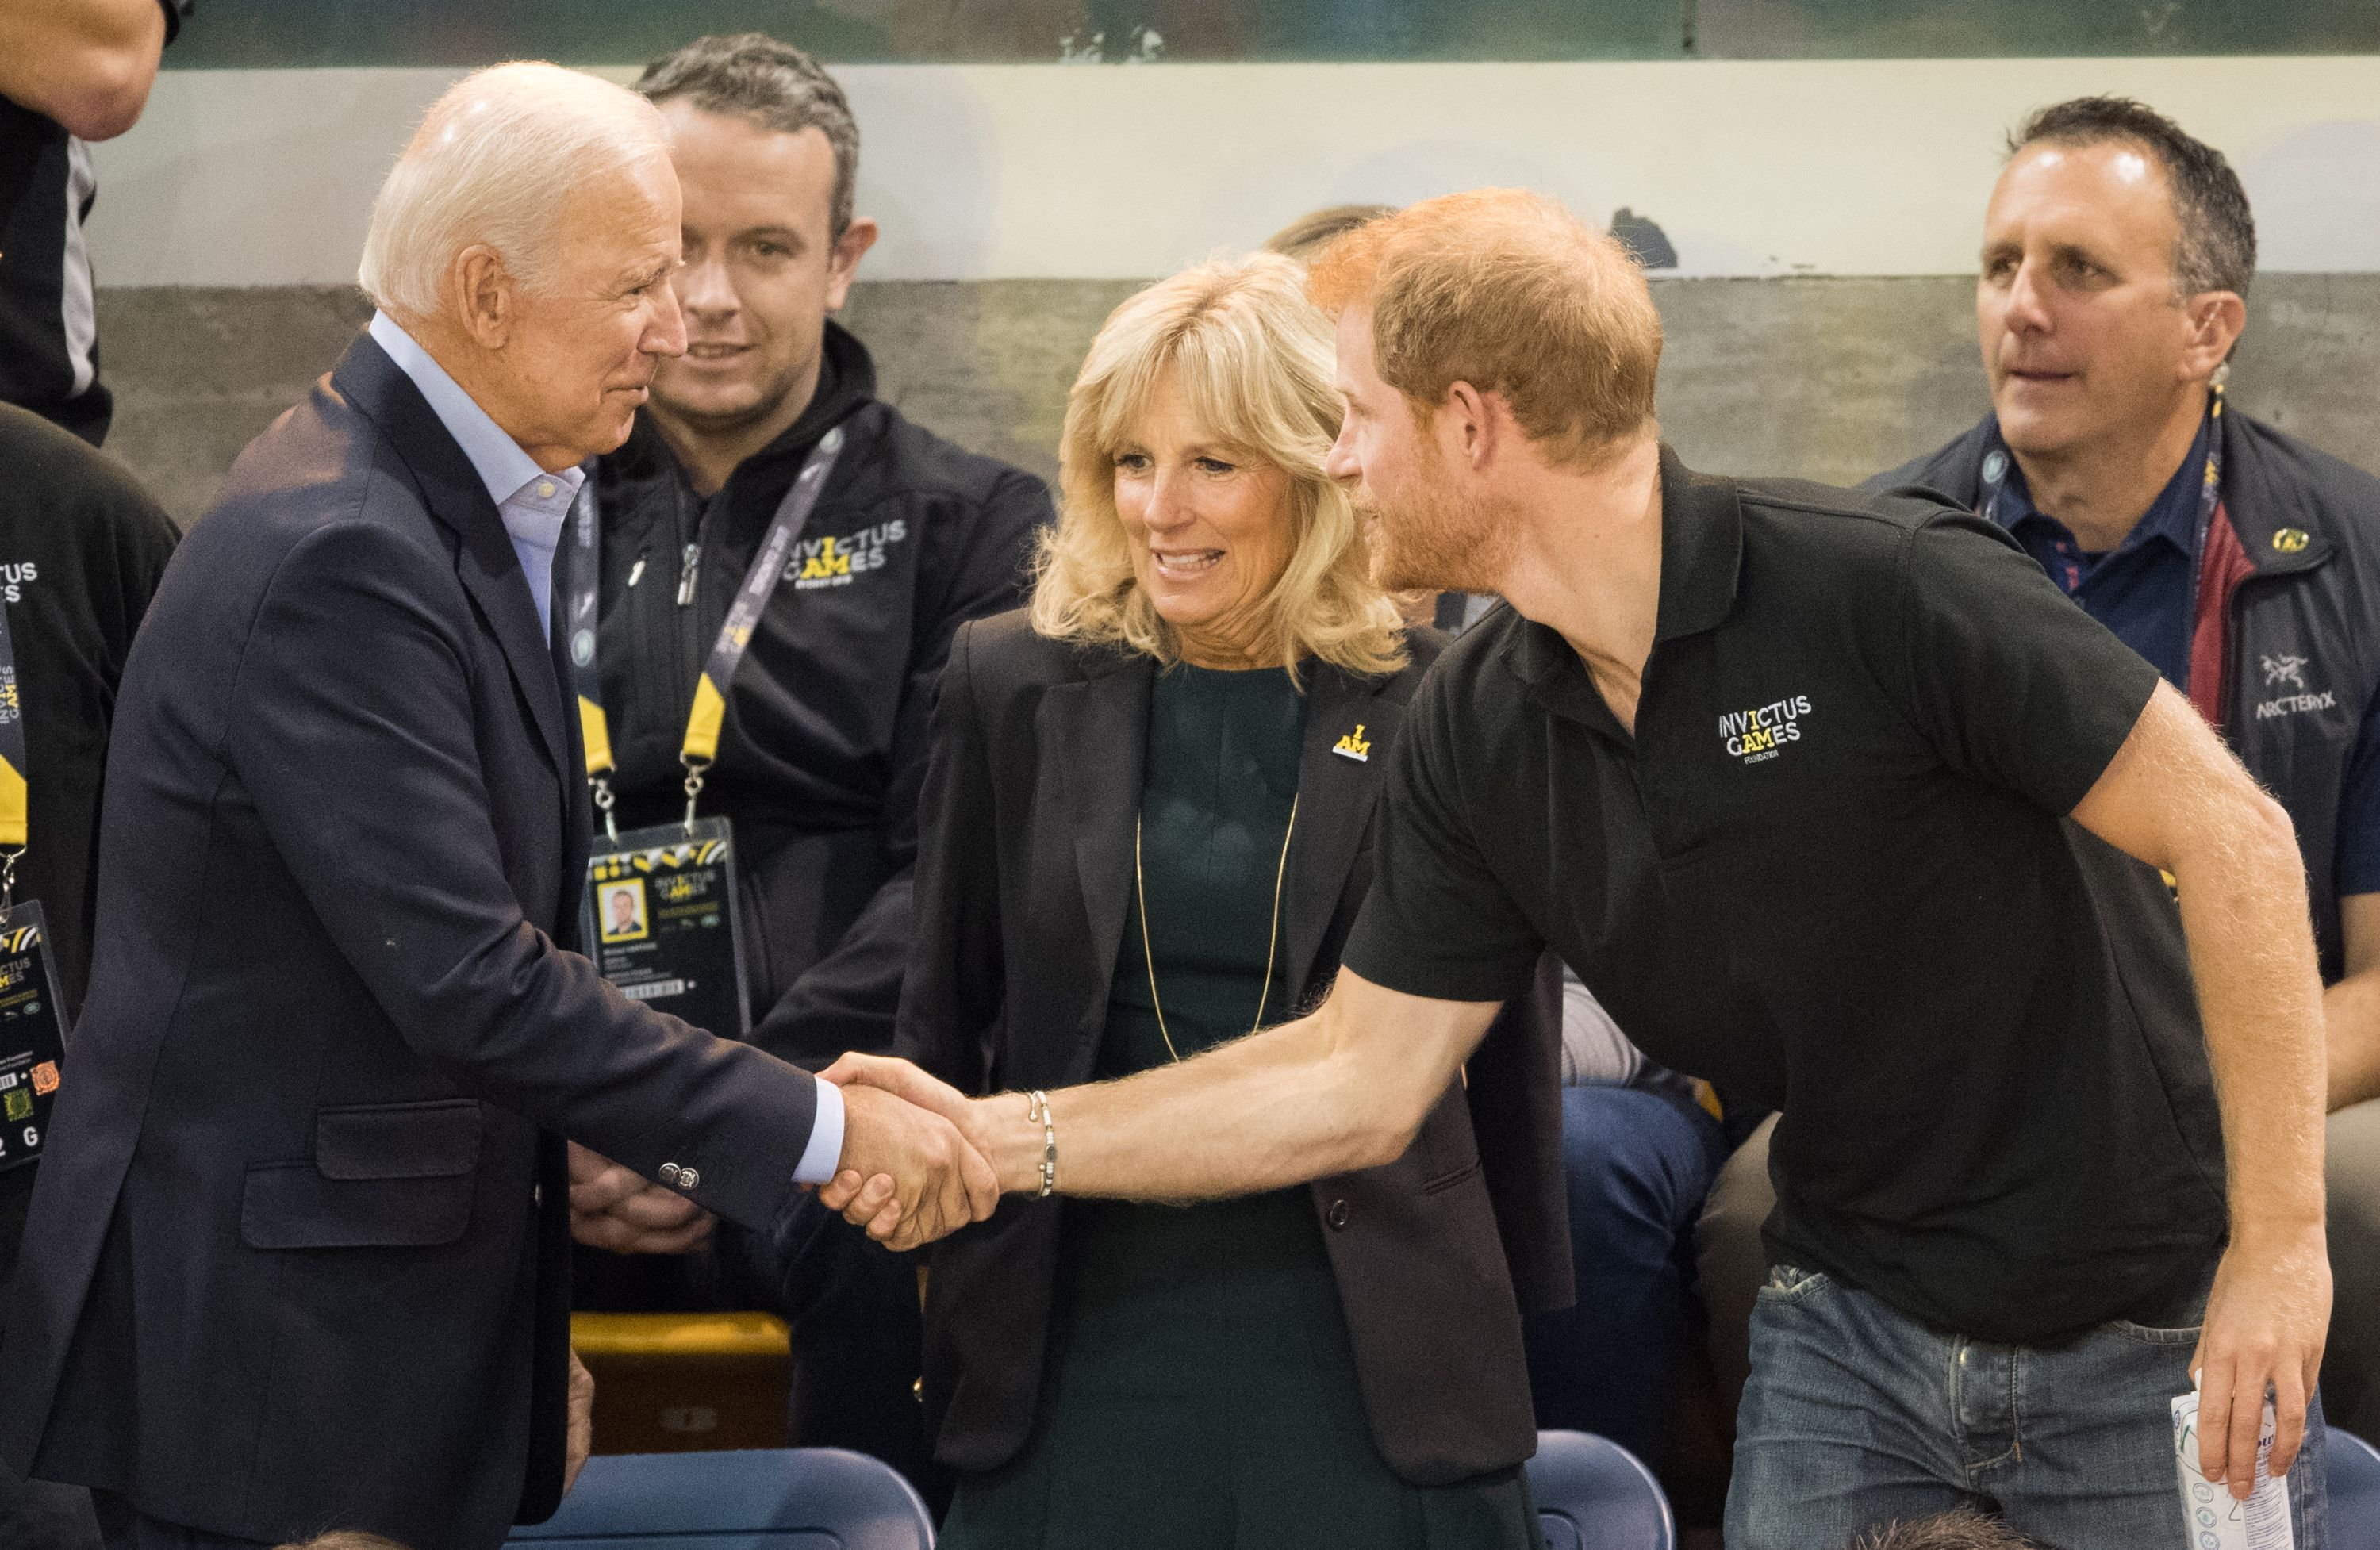 Prince Harry Played a Surprise Part in Joe Biden's Inauguration